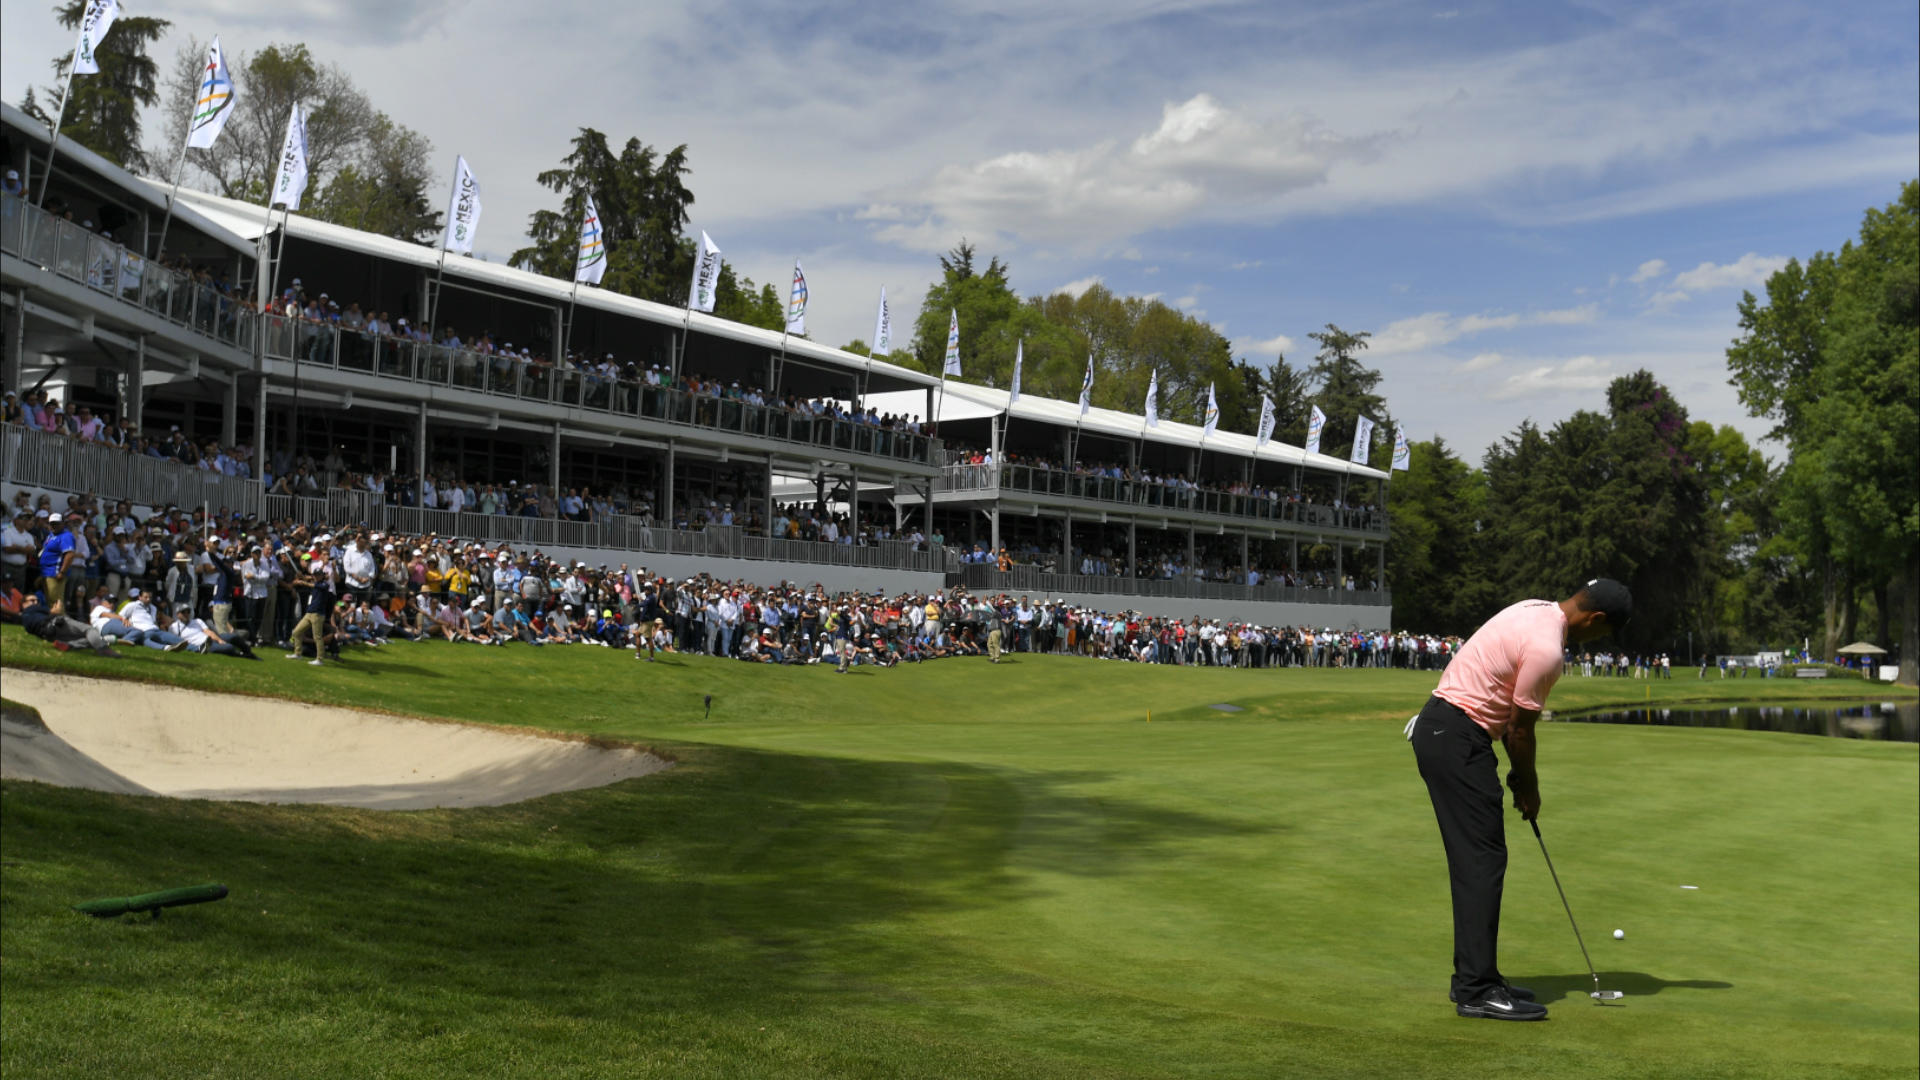 2019 WGC-Mexico Championship leaderboard: Live coverage, golf scores, Tiger Woods score for Round 3